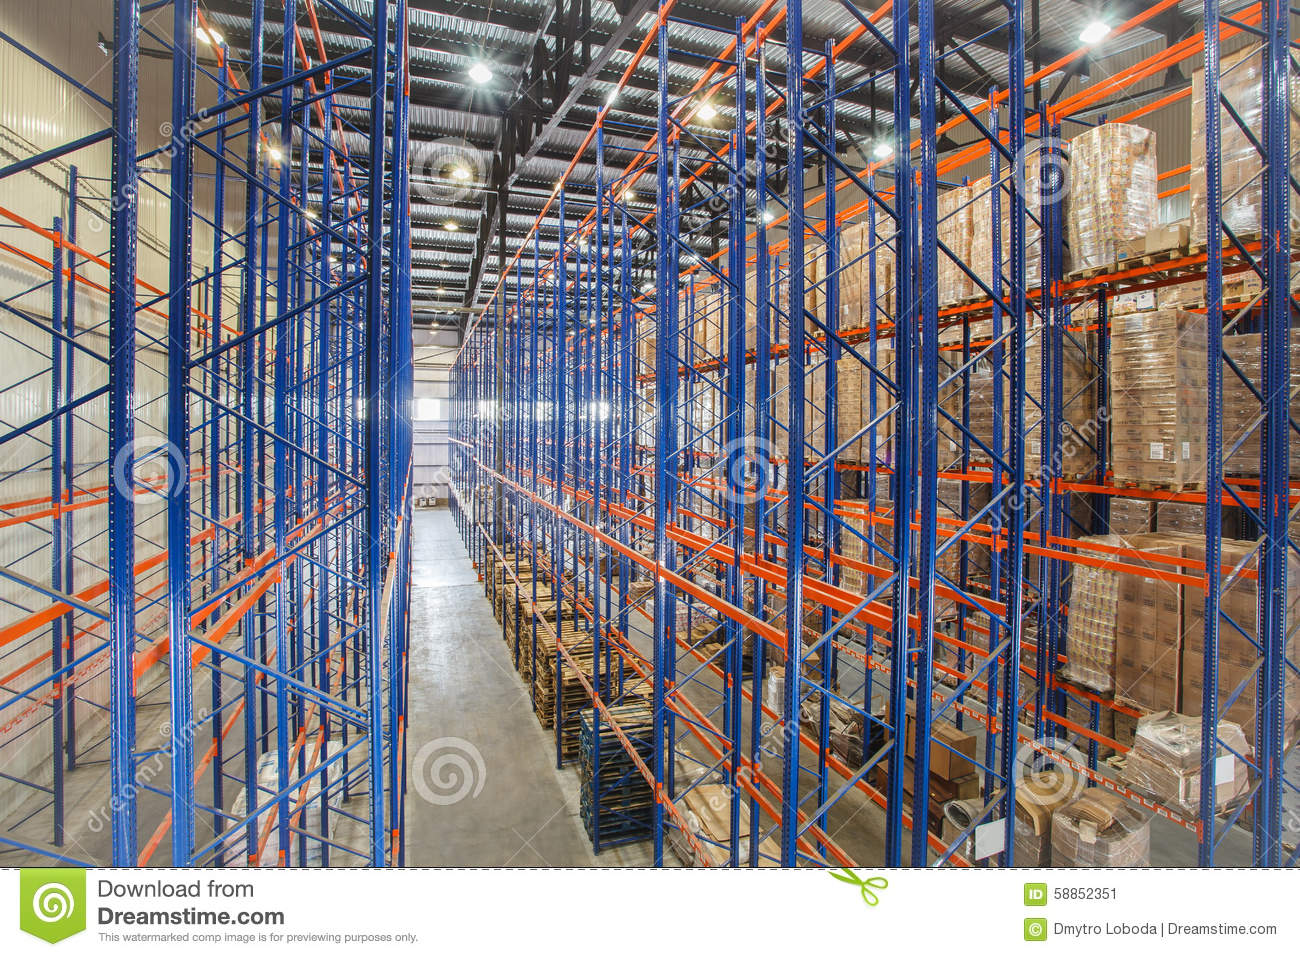 Warehouse Shelves Stock Image Image Of Building, Business